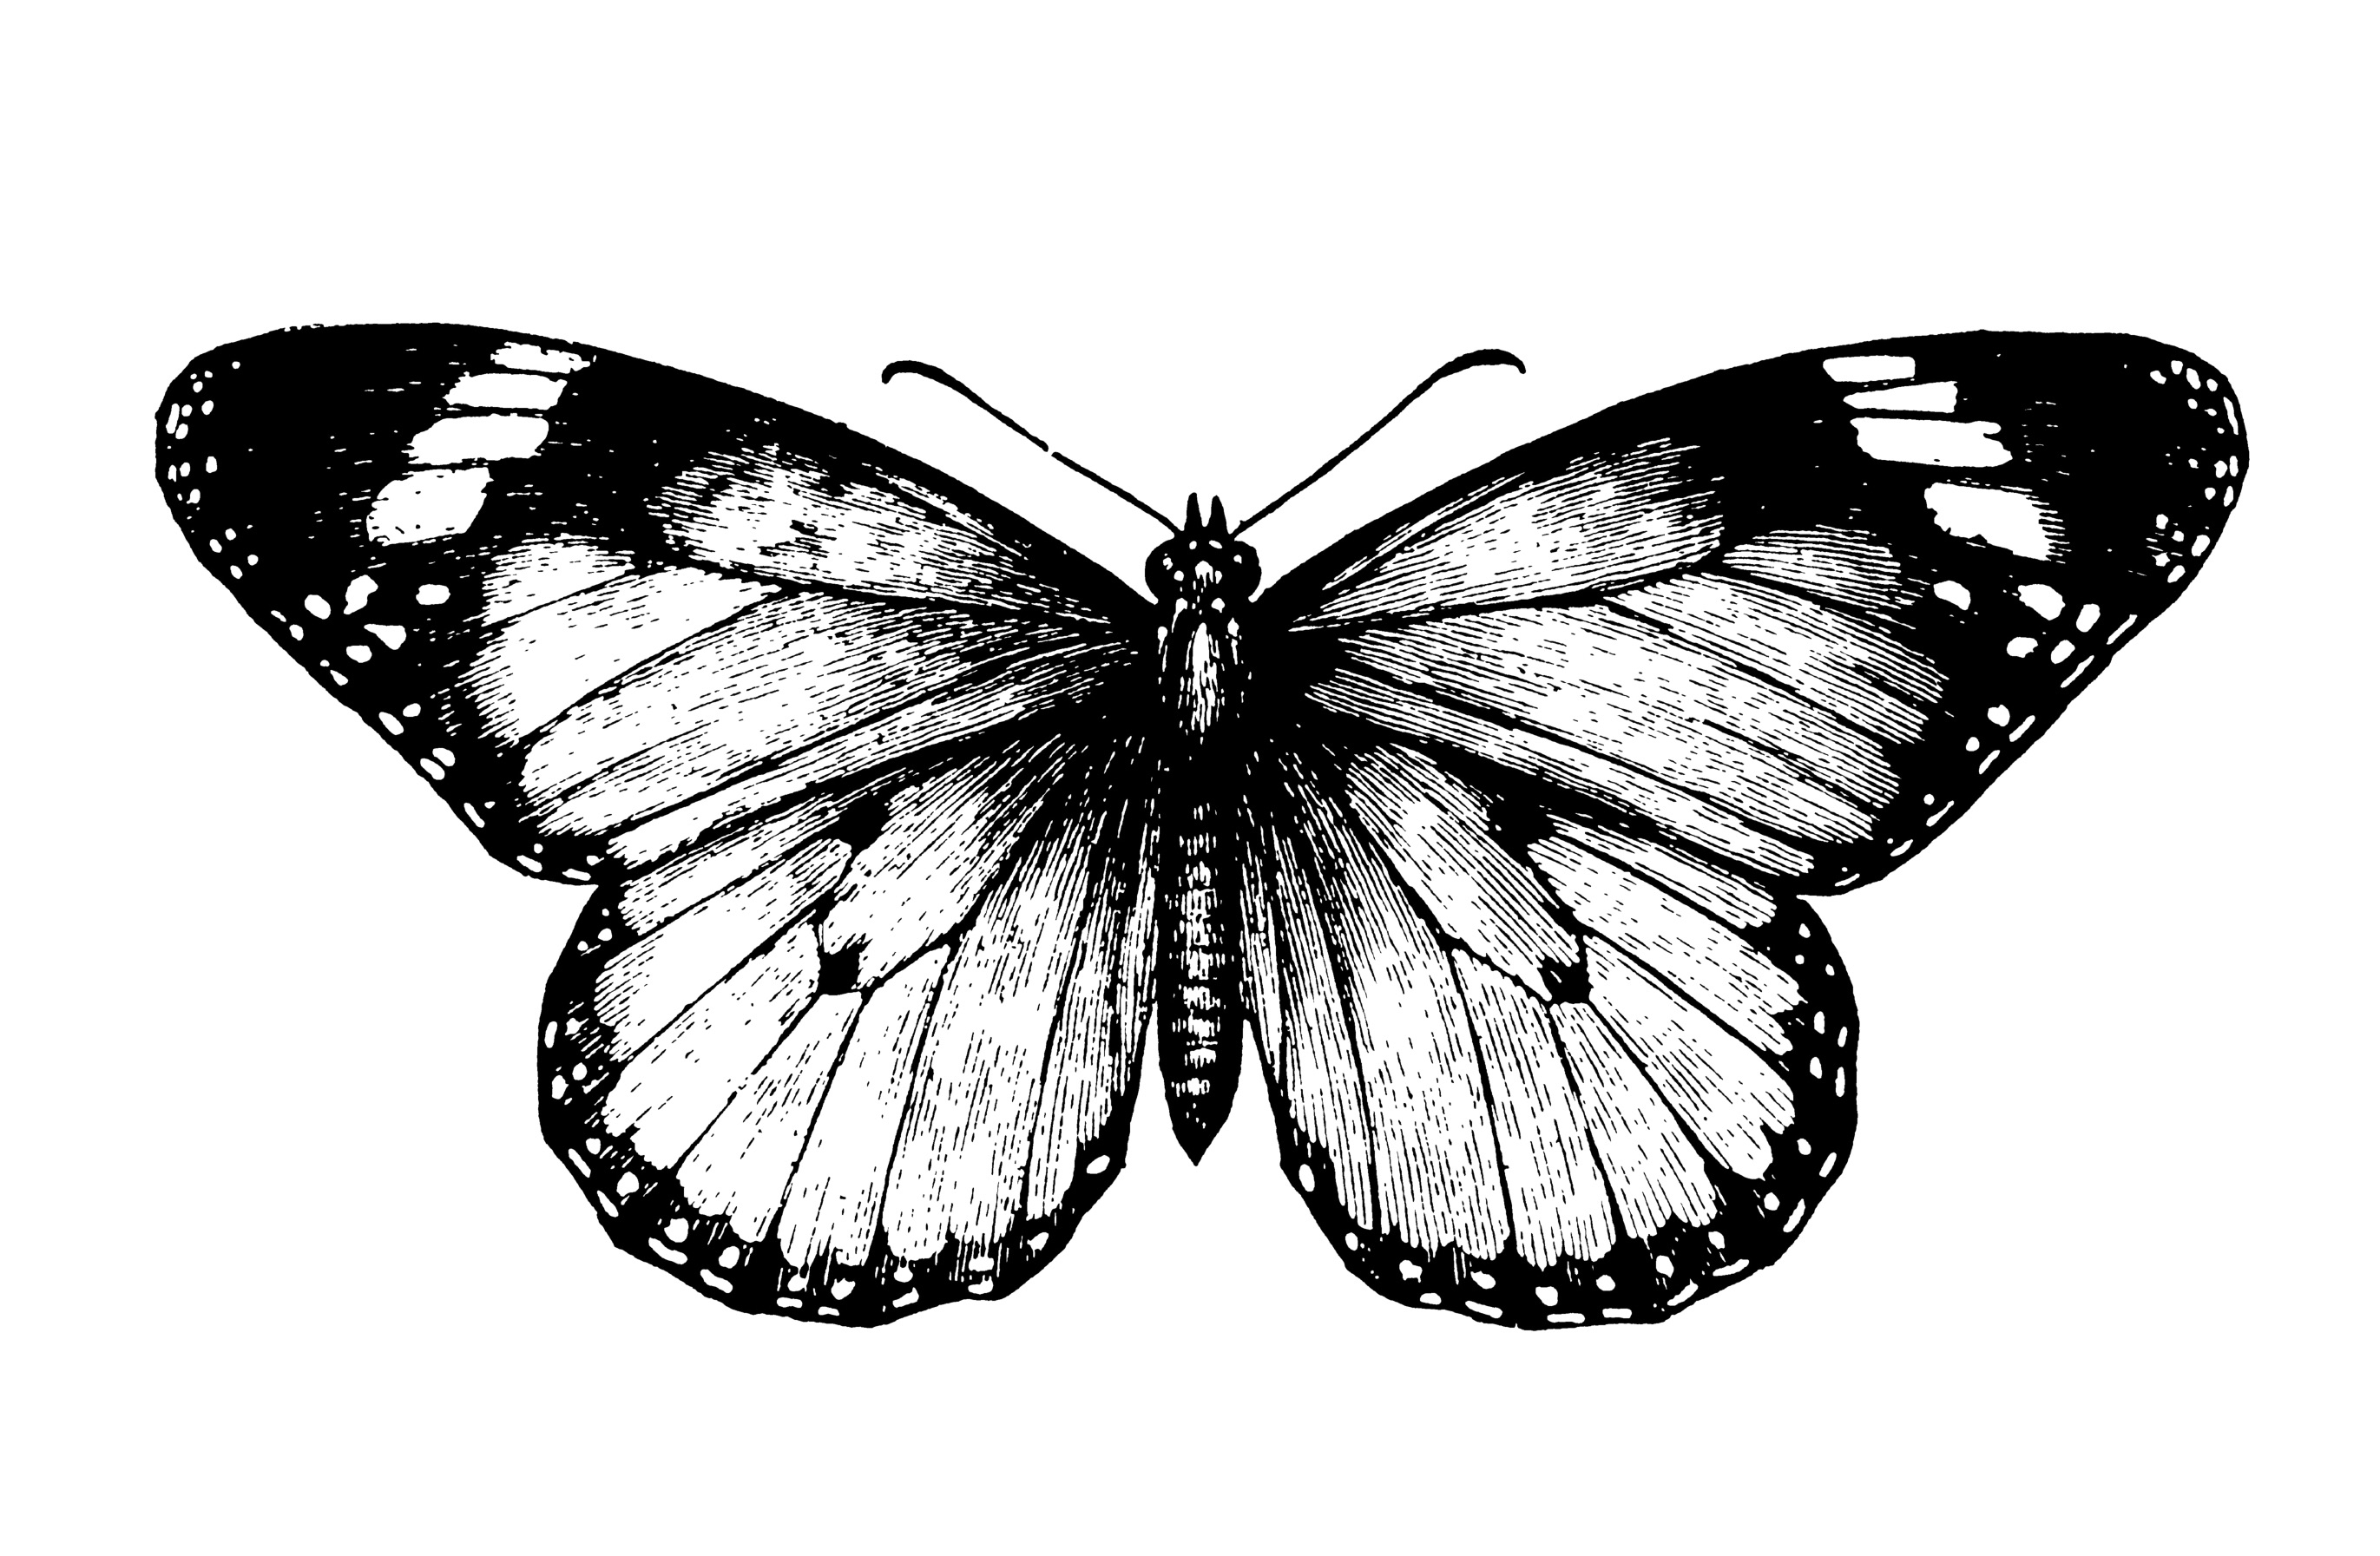 Black N White Butterfly Black And White Butterfly 1853907 Hd Wallpaper Backgrounds Download